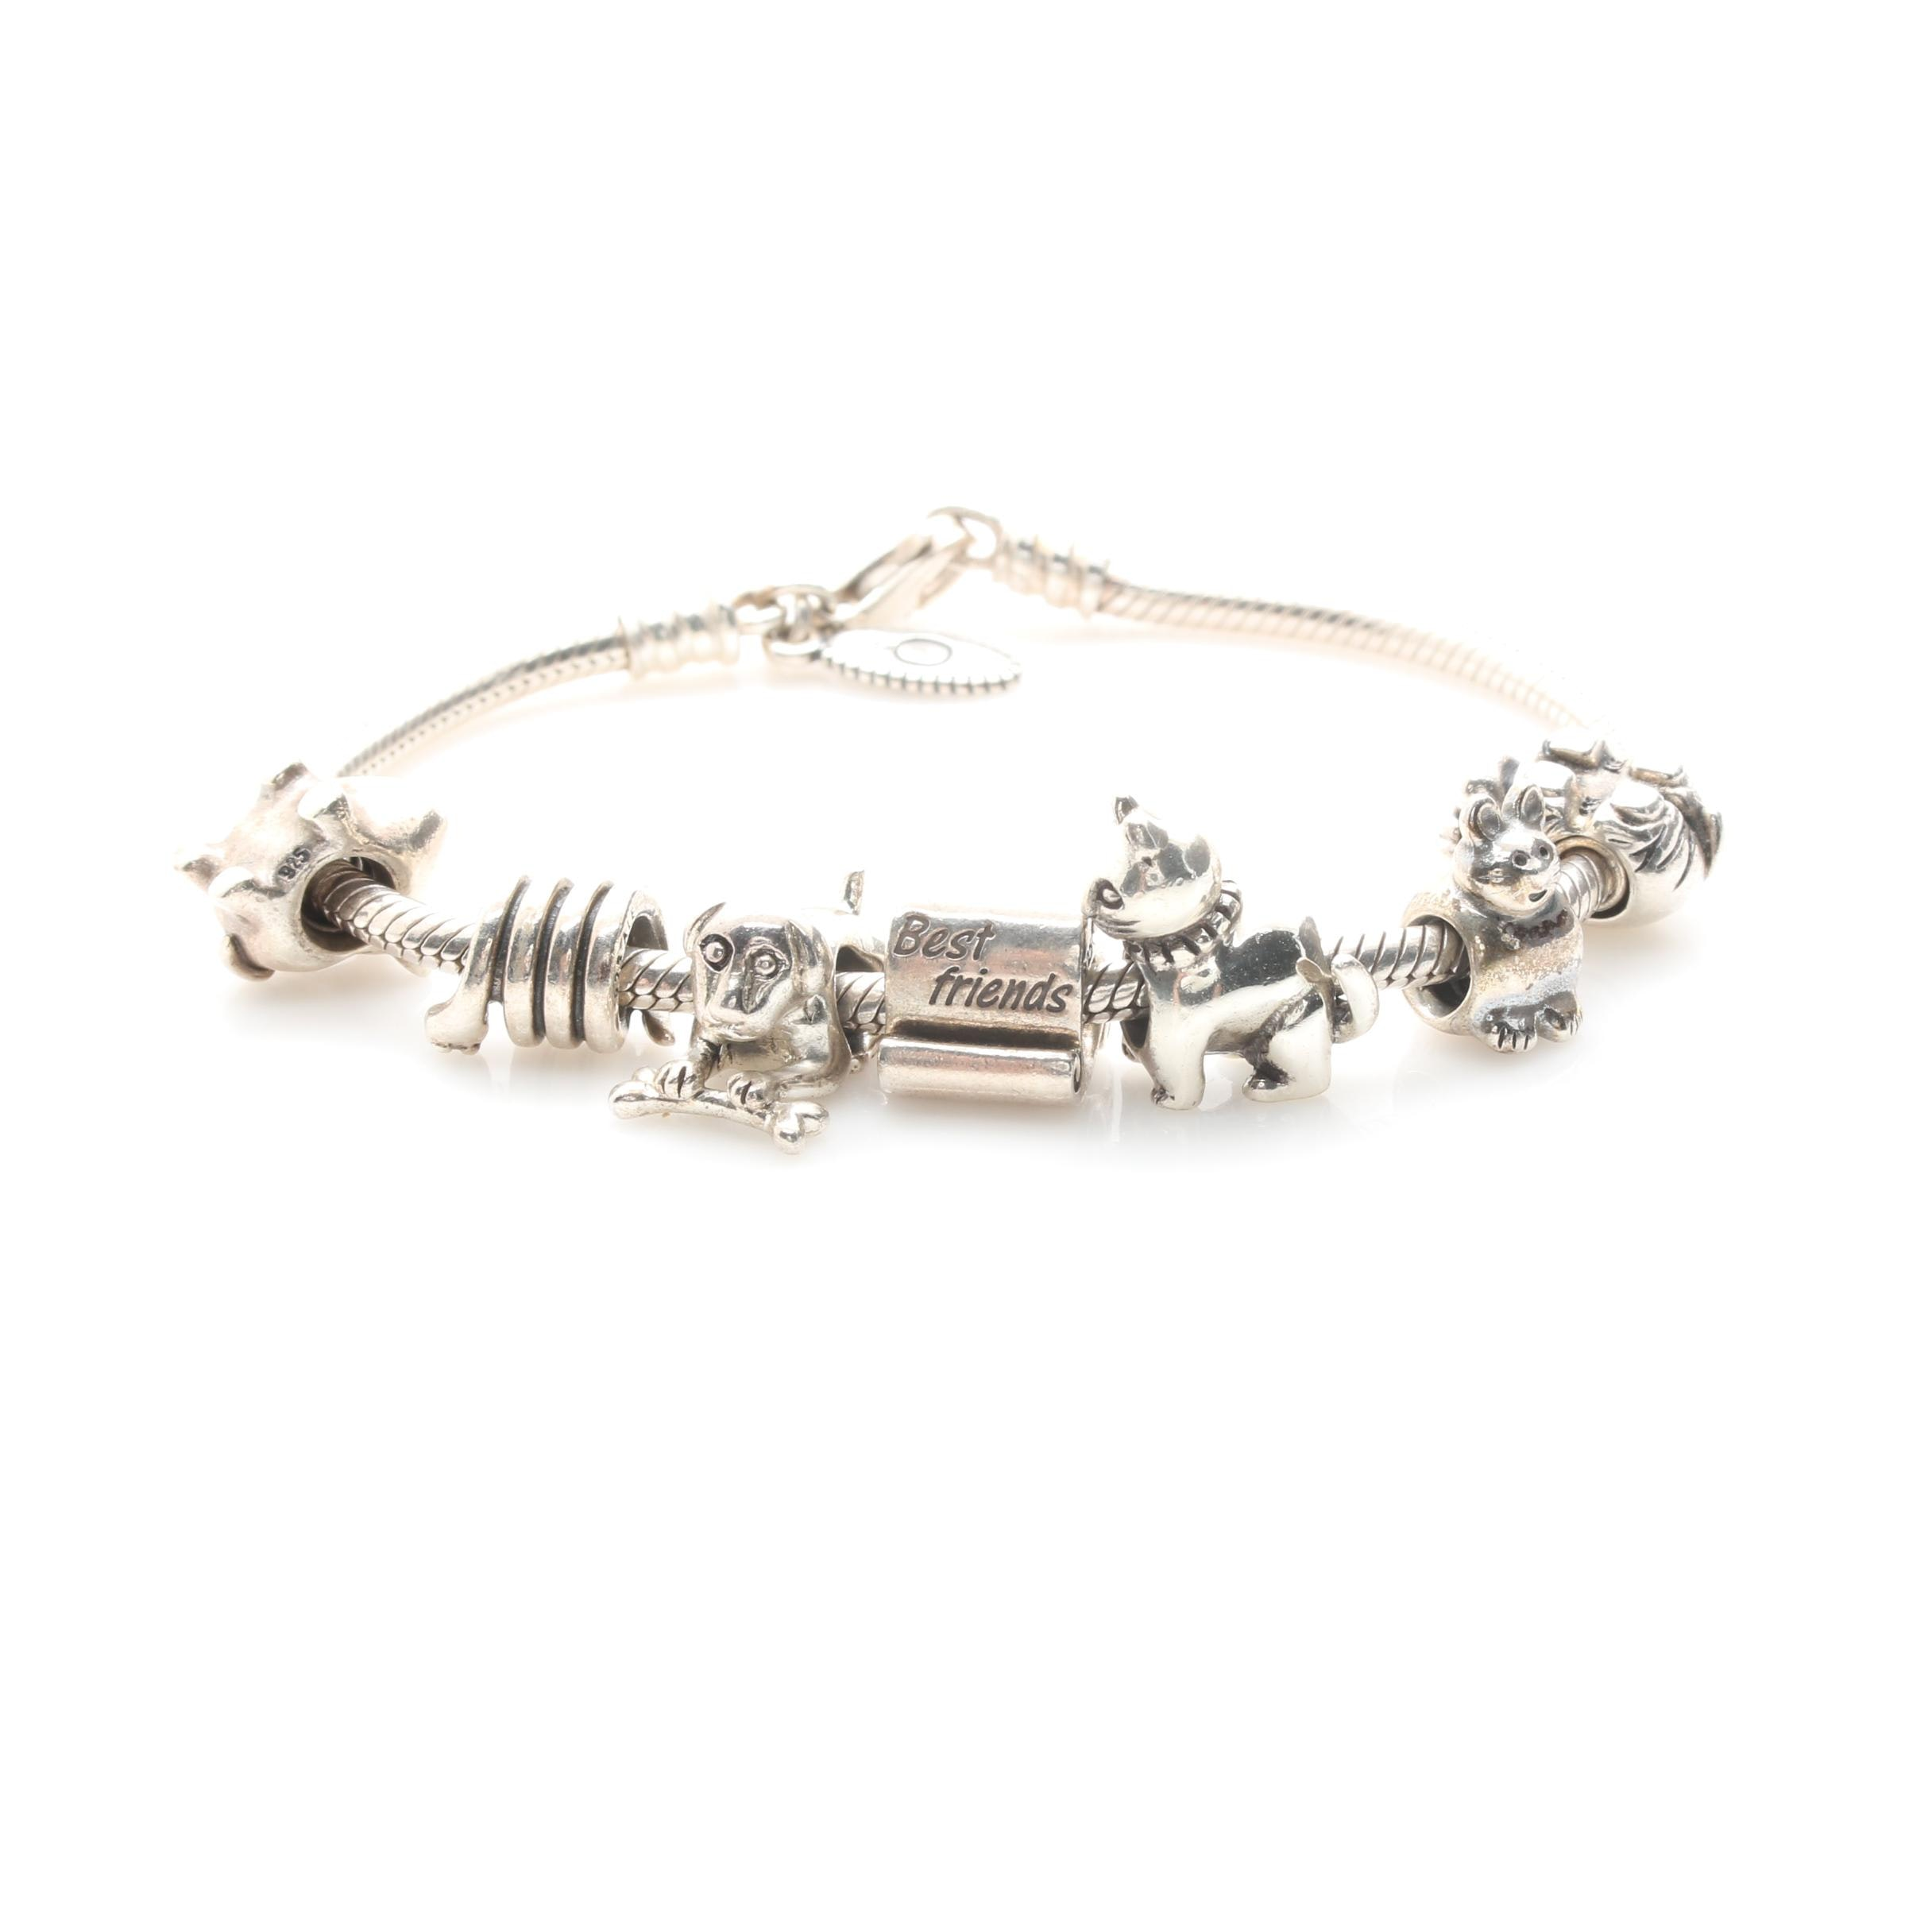 Pandora Sterling Silver Bracelet with Several Charms